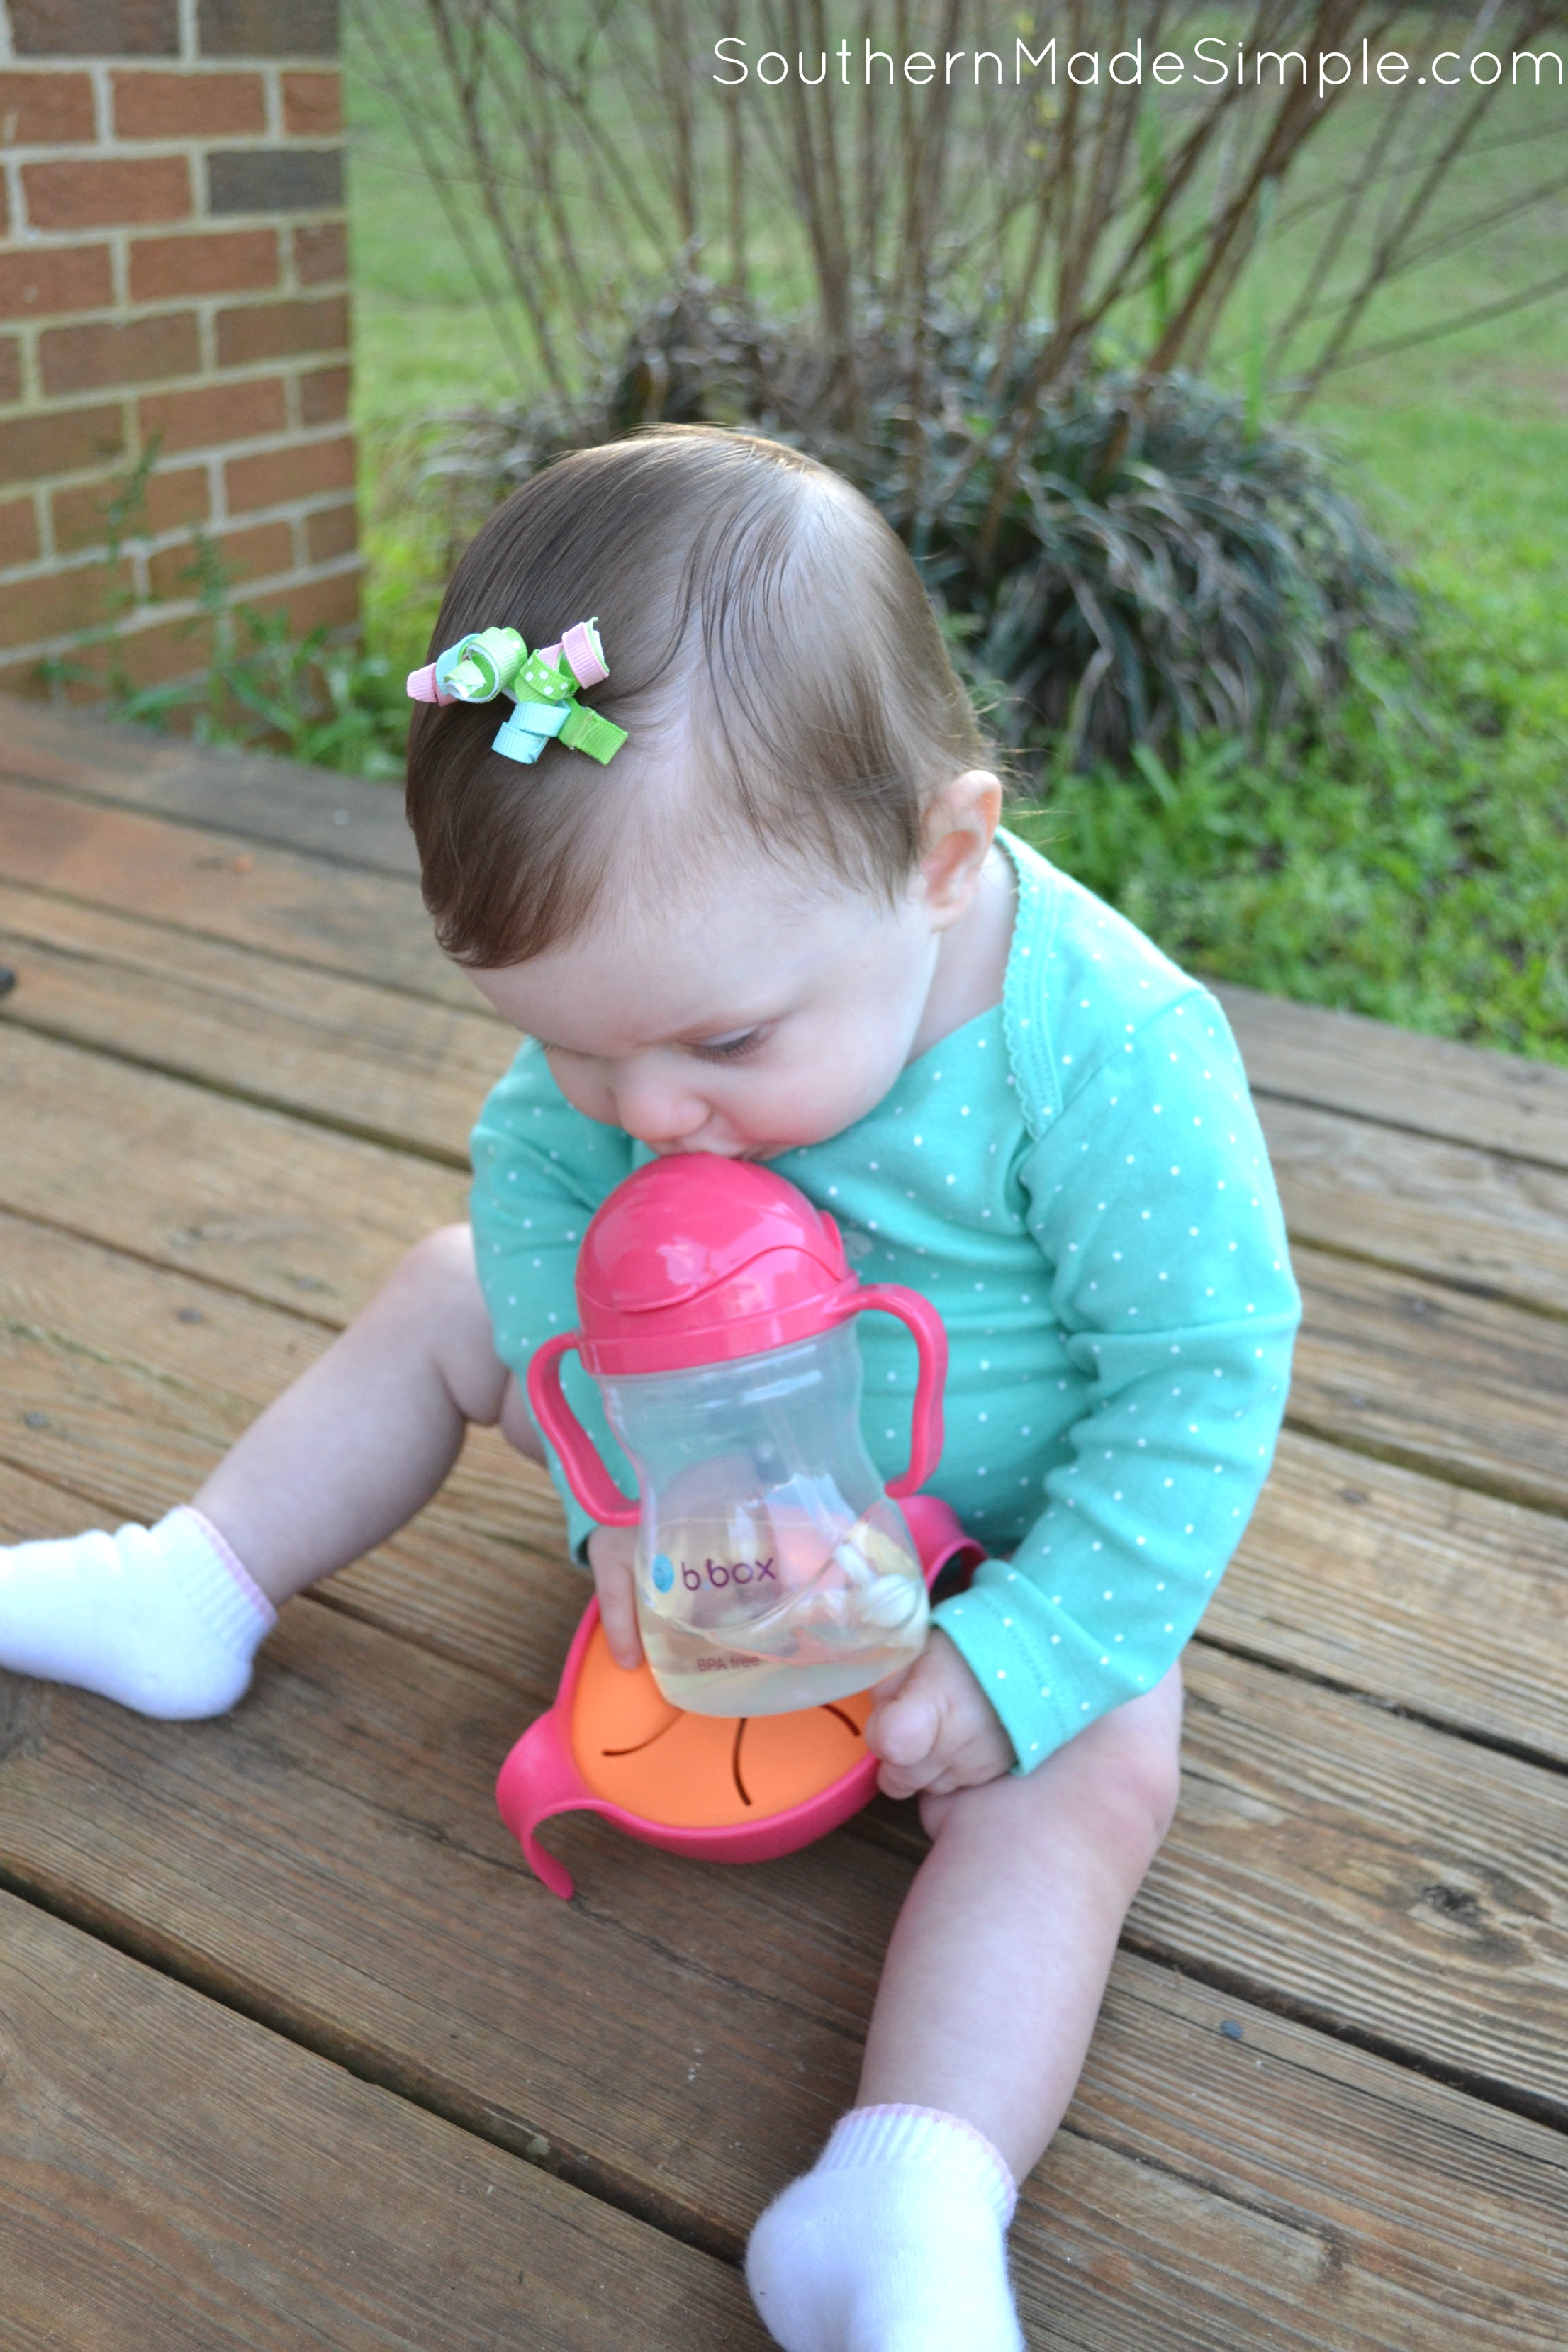 b.box puts the fun in functional during meal time! B.box Review